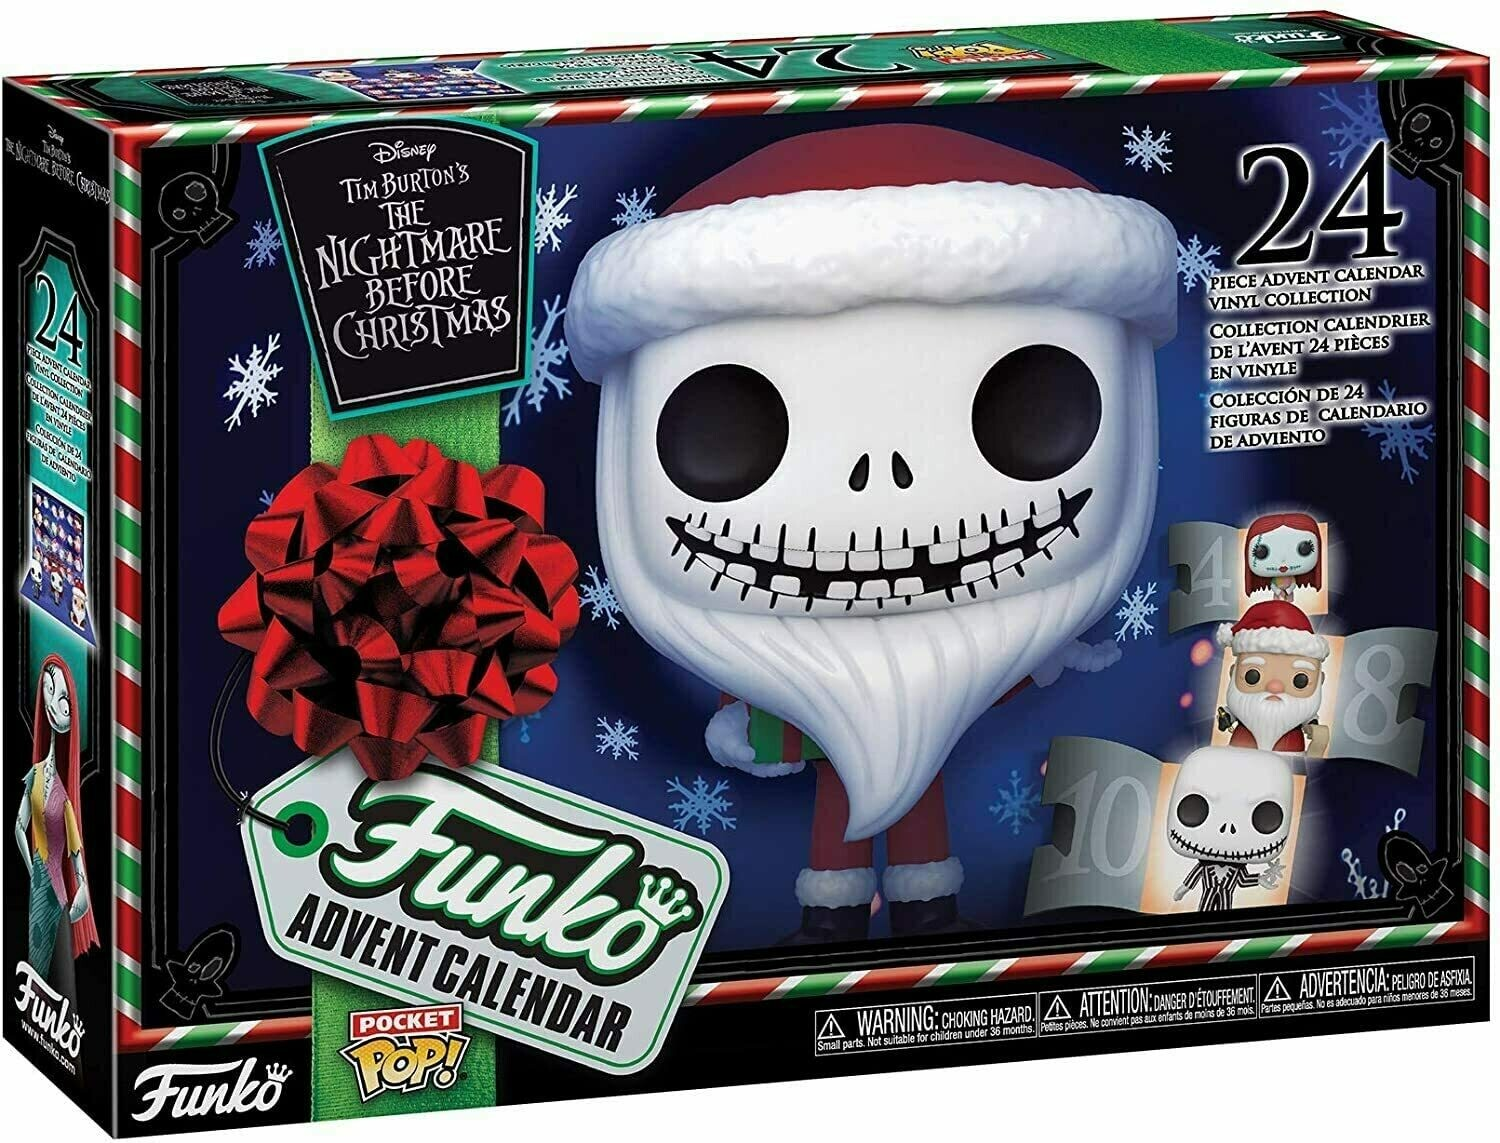 The Nightmare Before Christmas Advent Calender